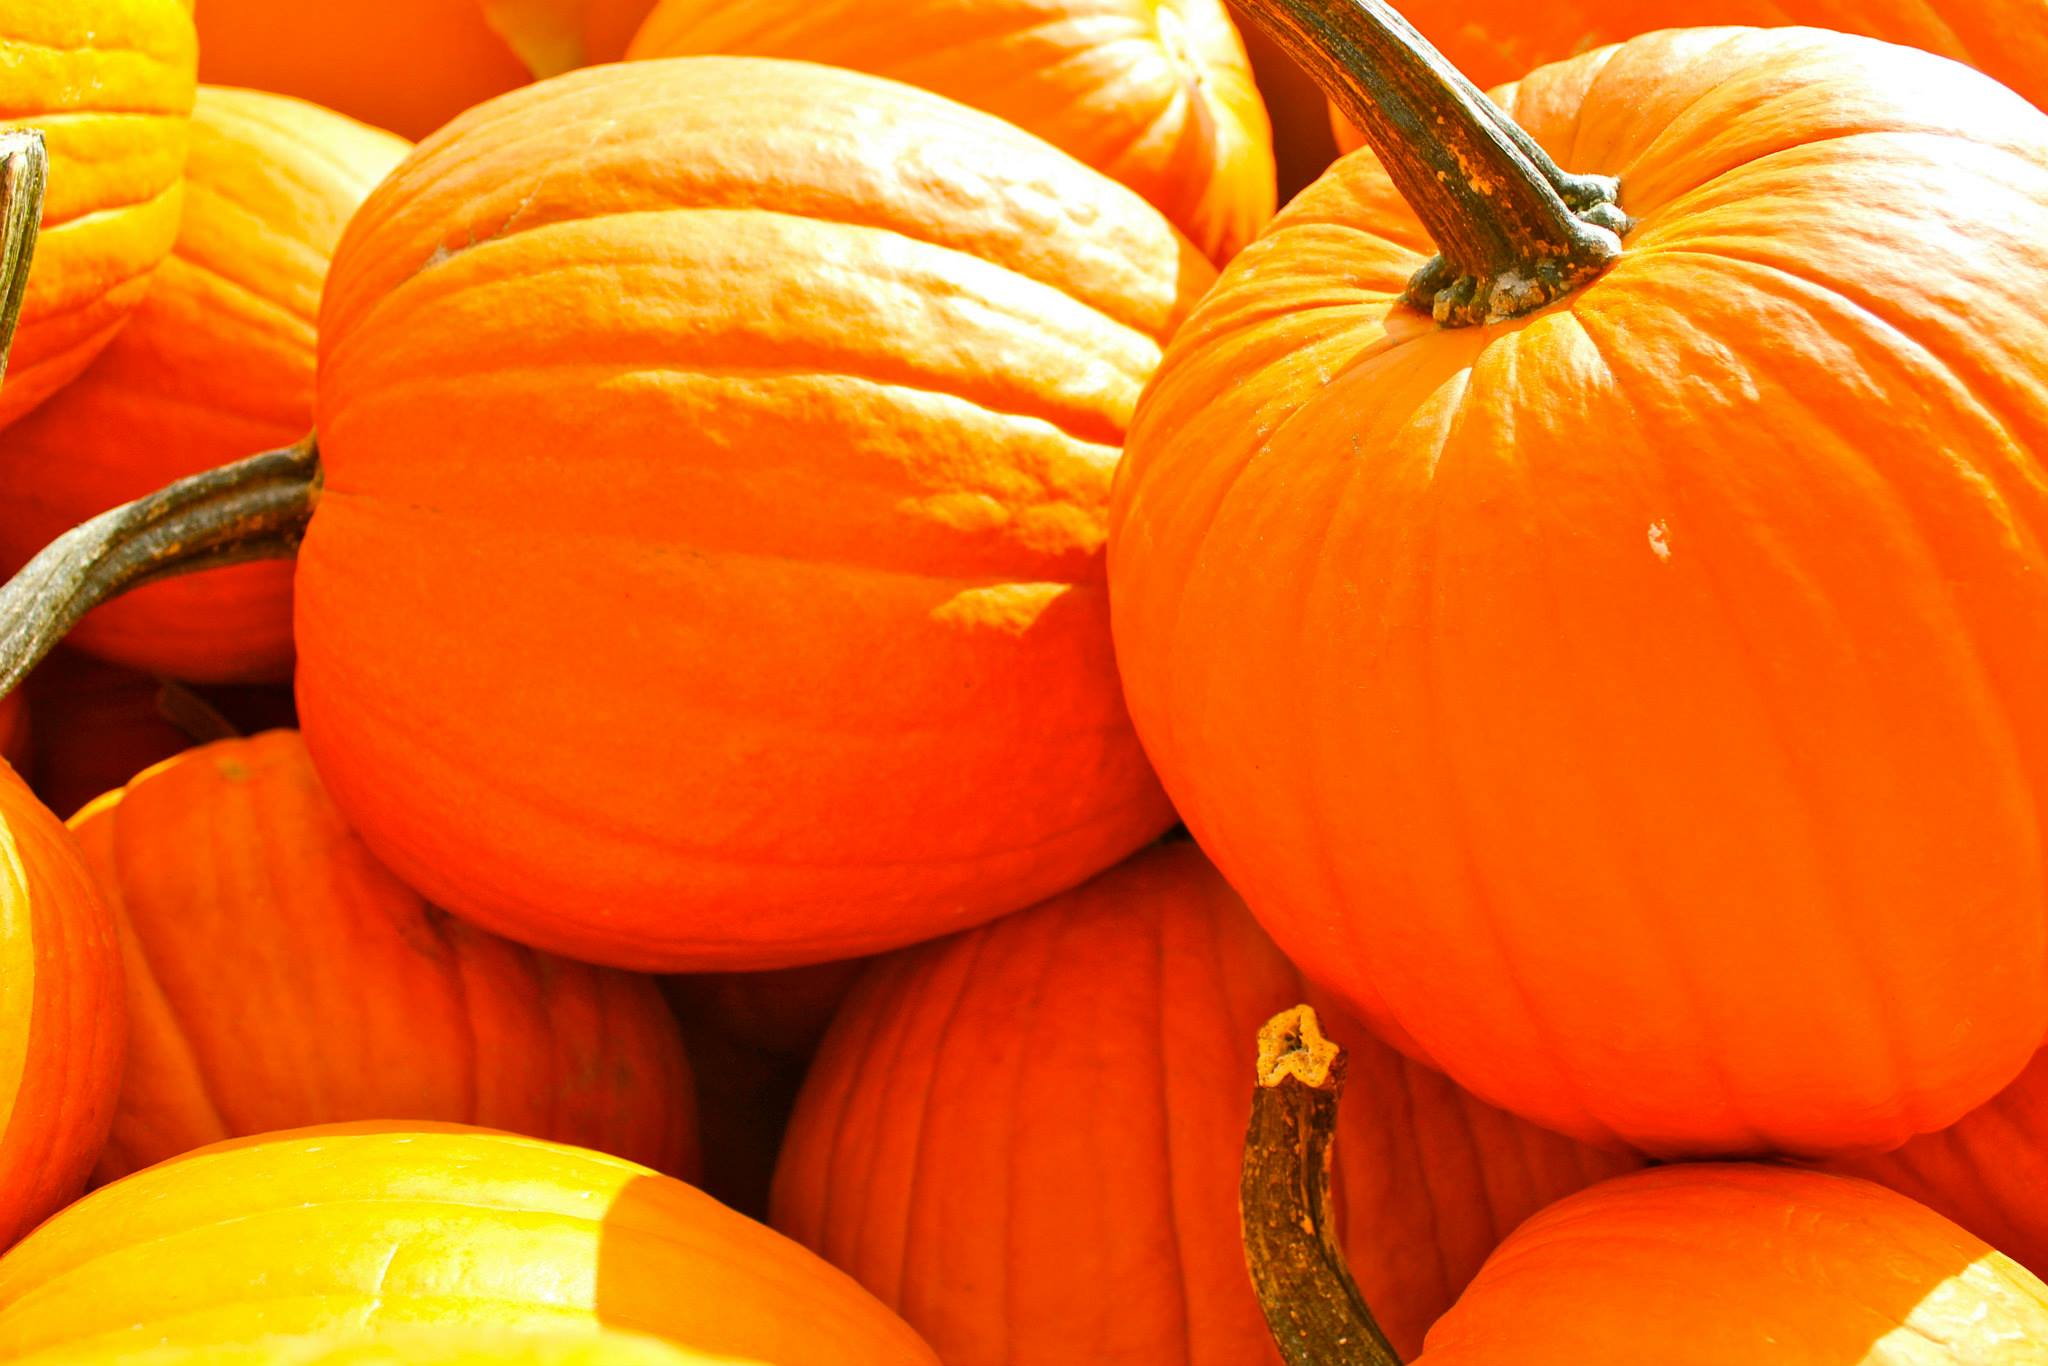 Its Fall Ya'll: Autumnal Happenings @ the Market